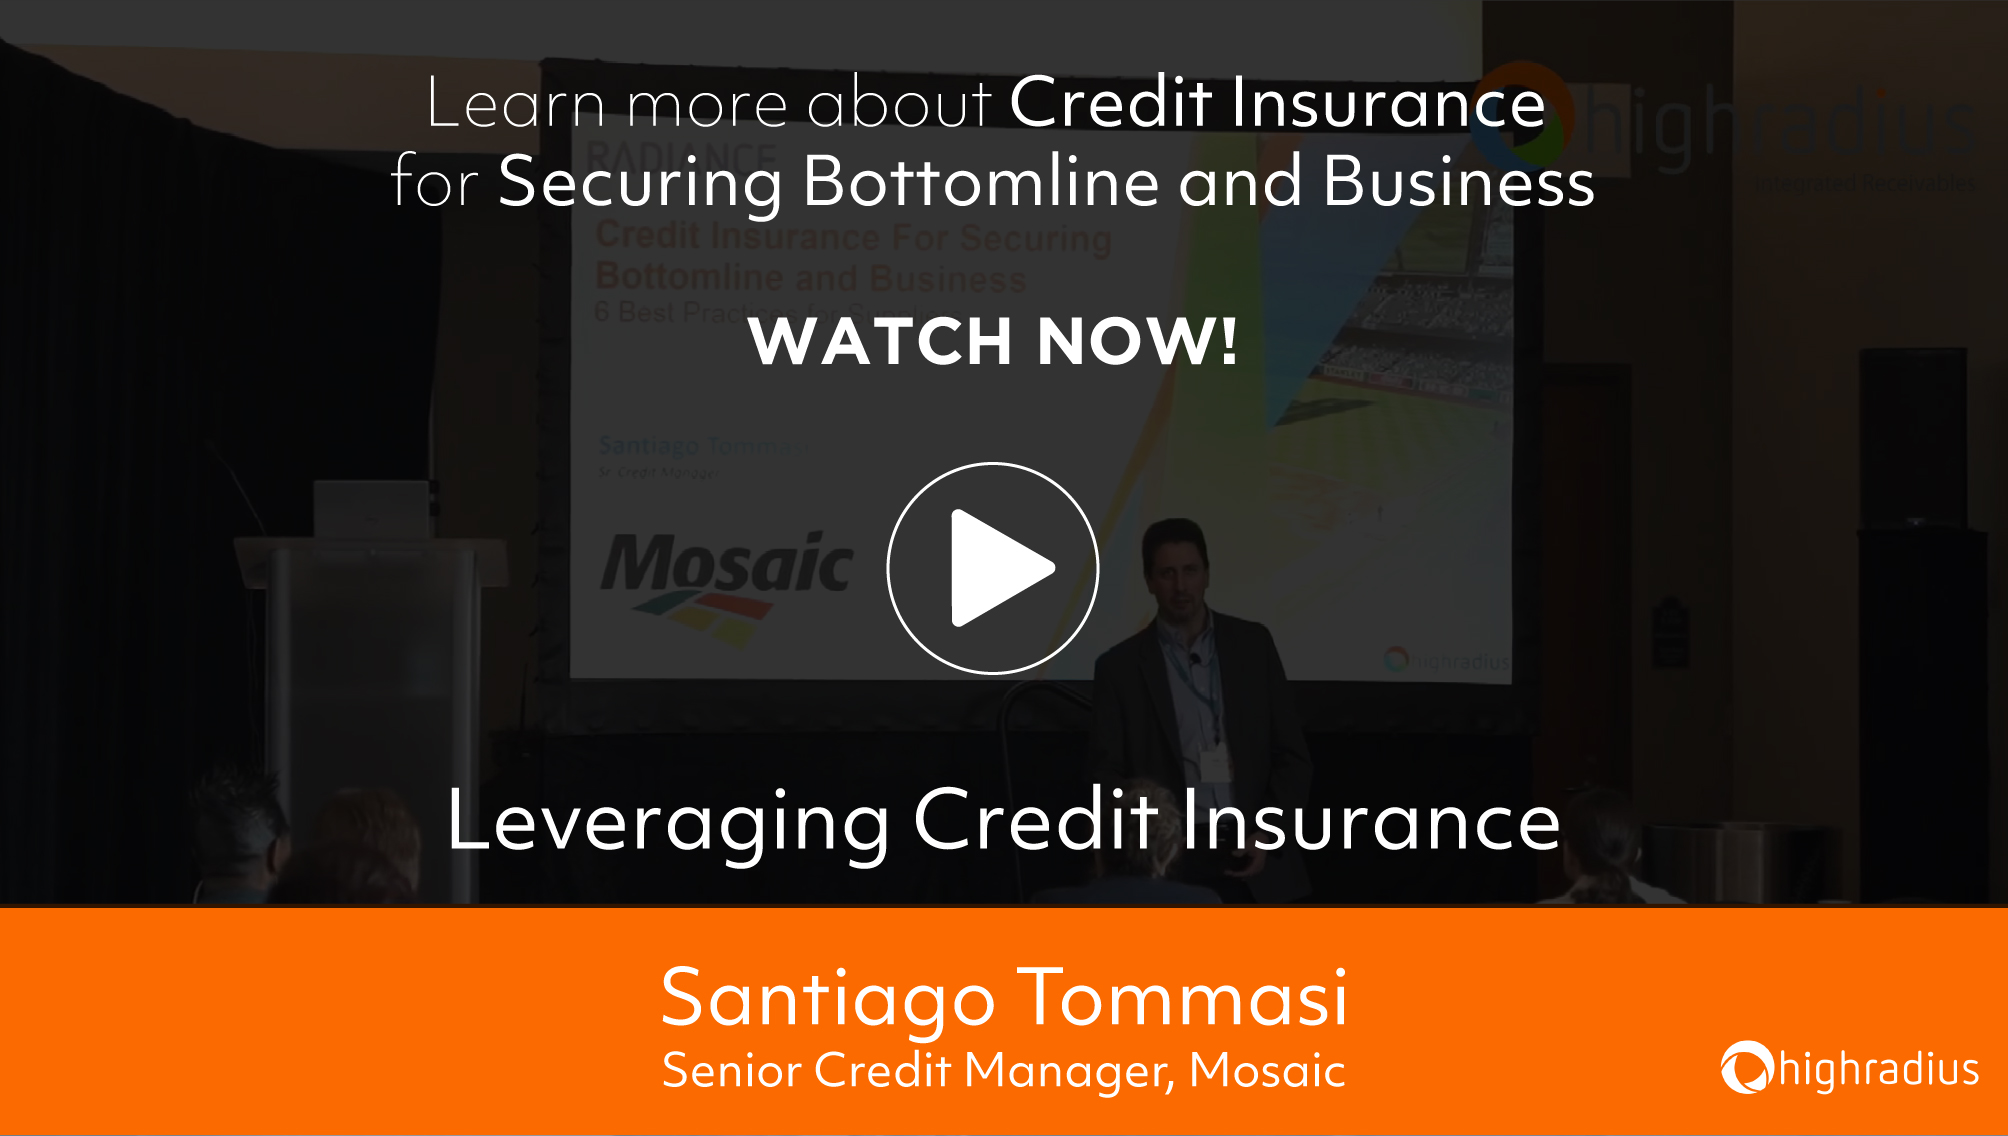 Leveraging Credit Insurance